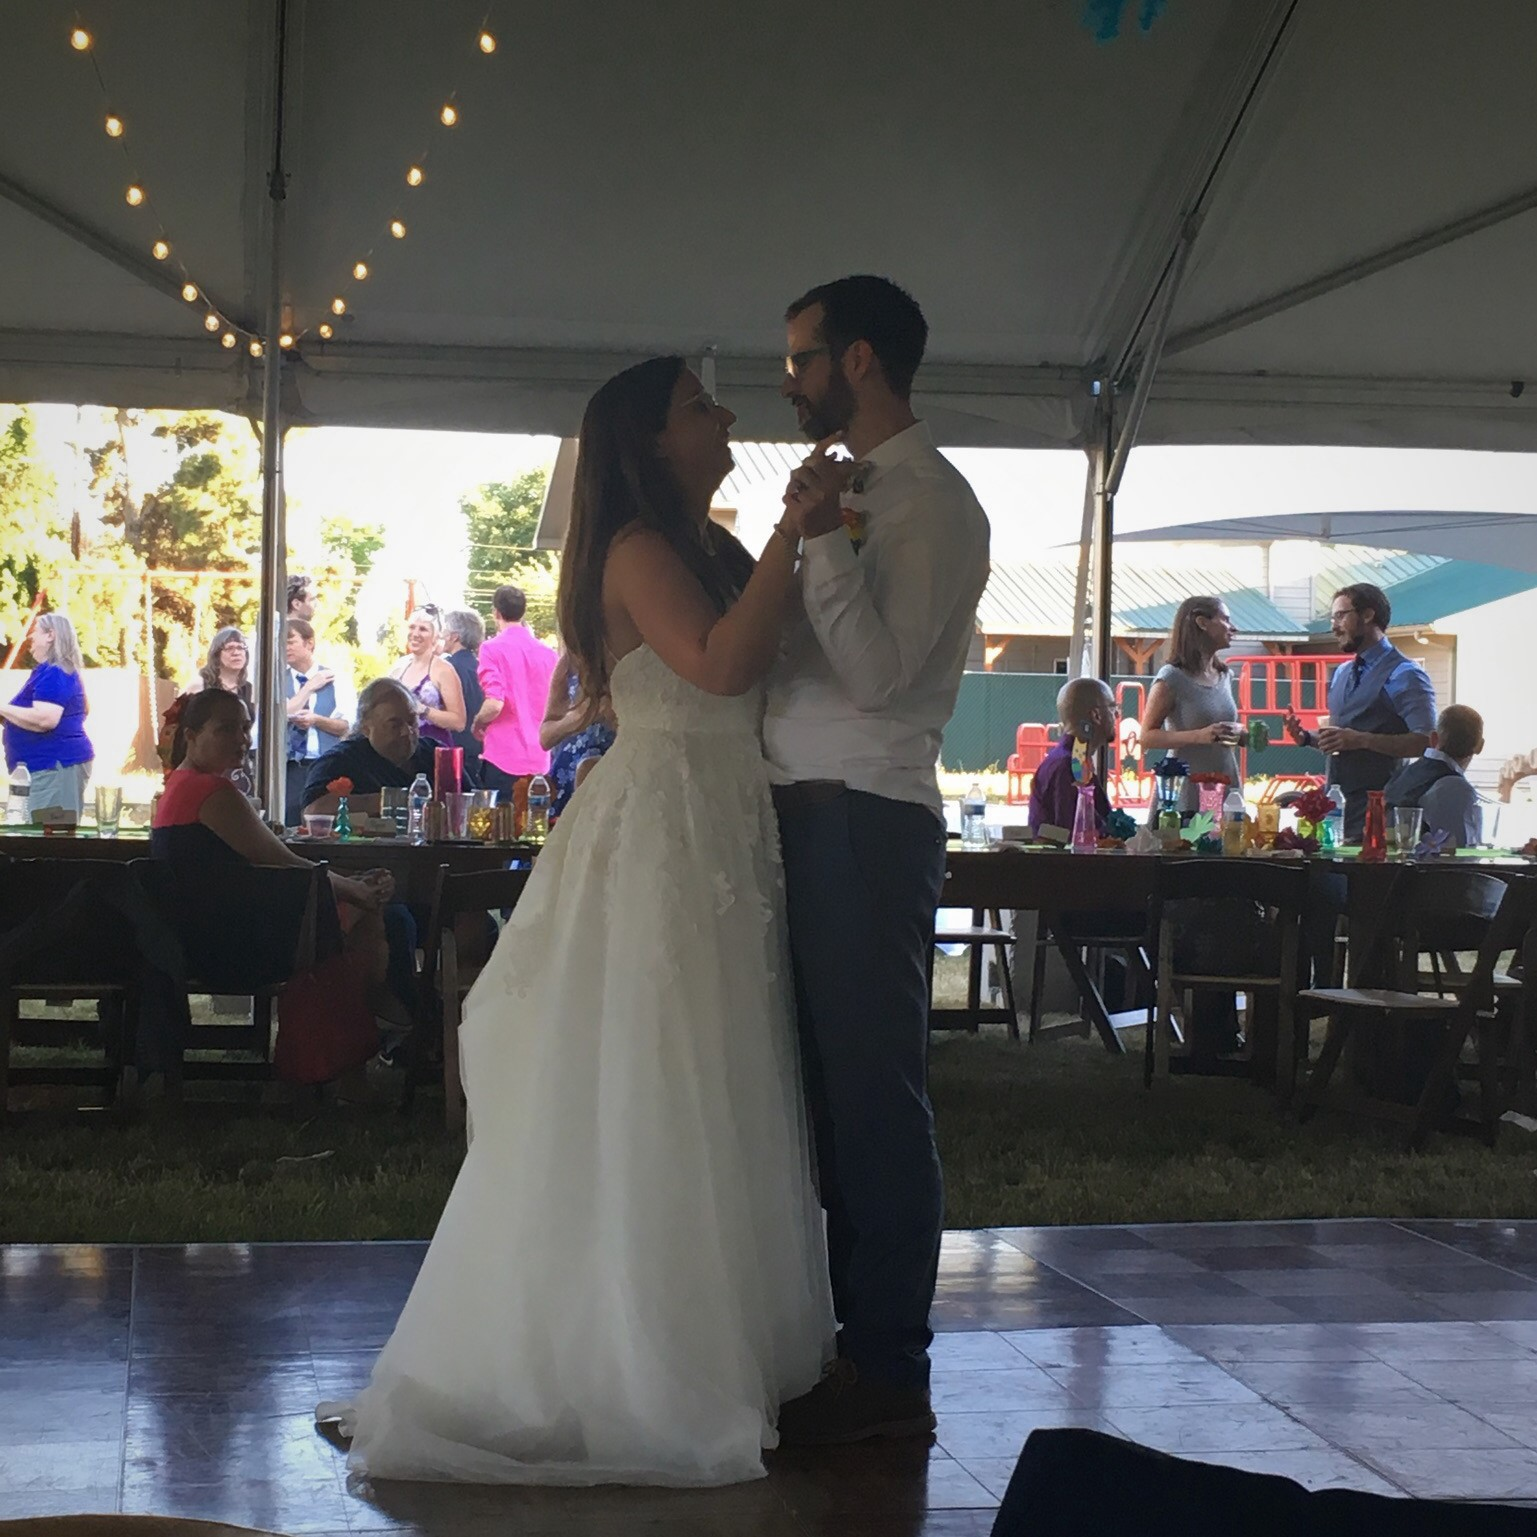 What getting married means